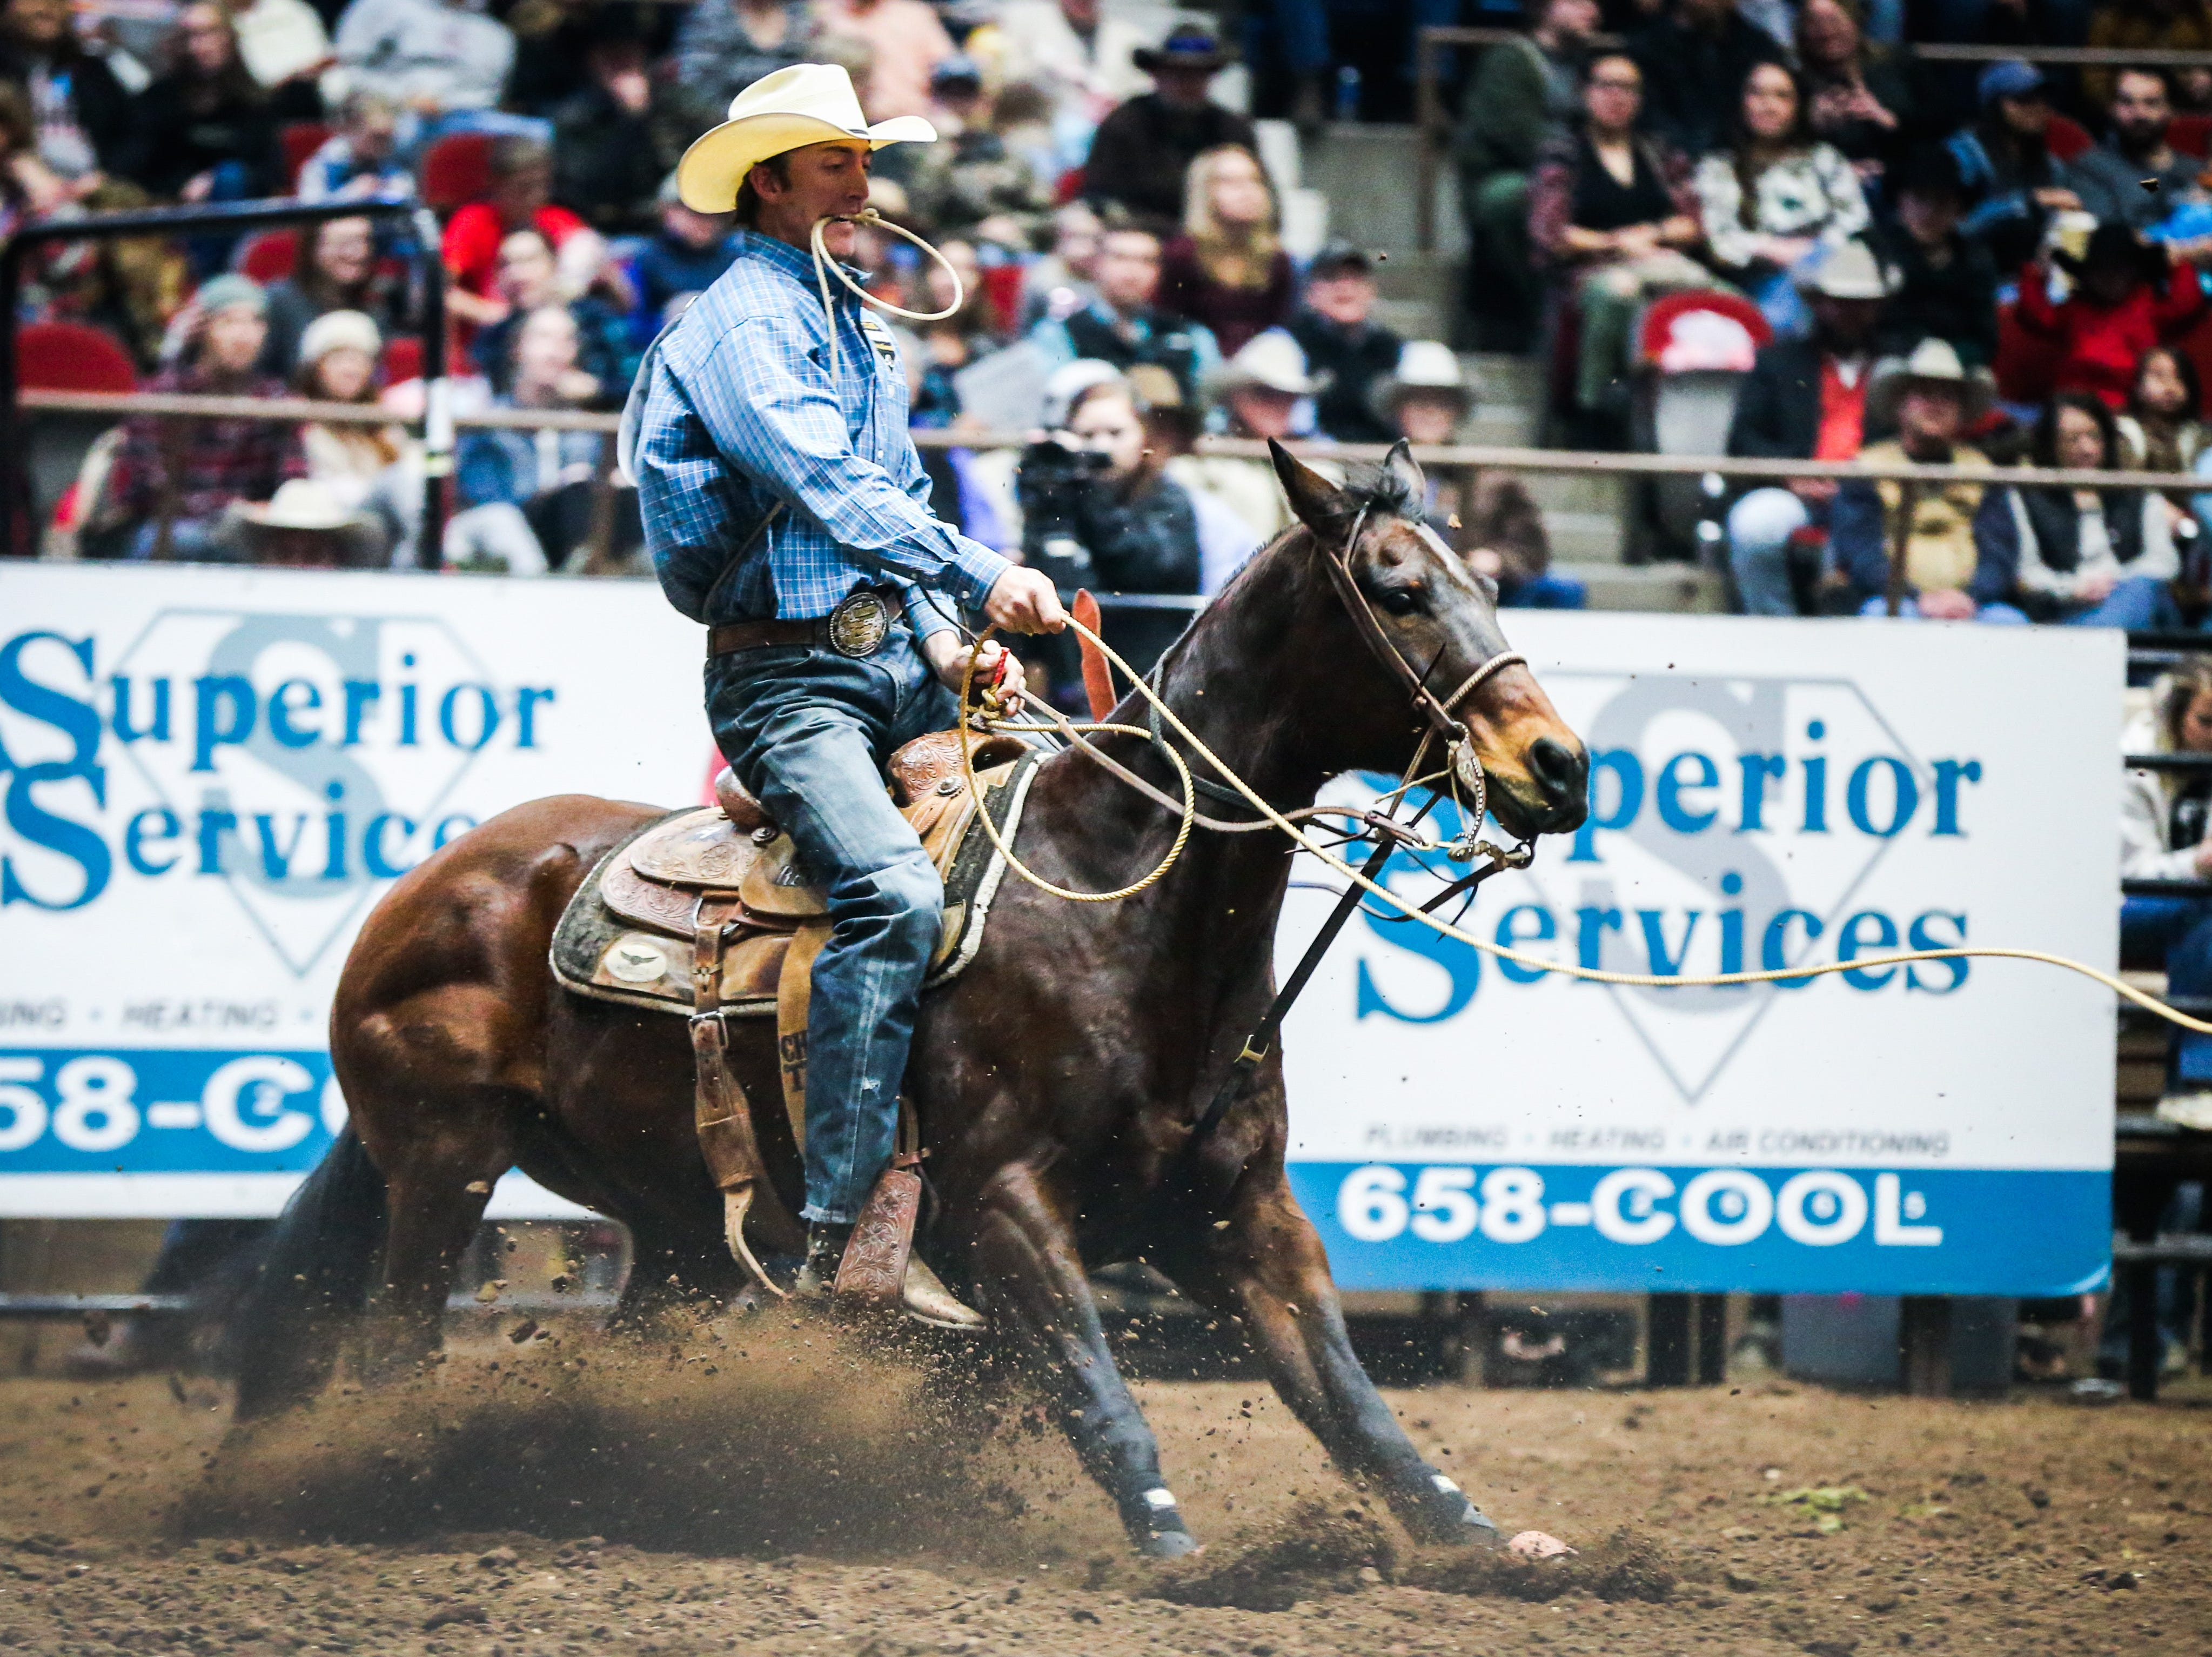 Taylor Santos rides out to tie down a calf during the San Angelo Stock Show & Rodeo matinee show Saturday, Feb. 9, 2019, at Foster Communications Coliseum.